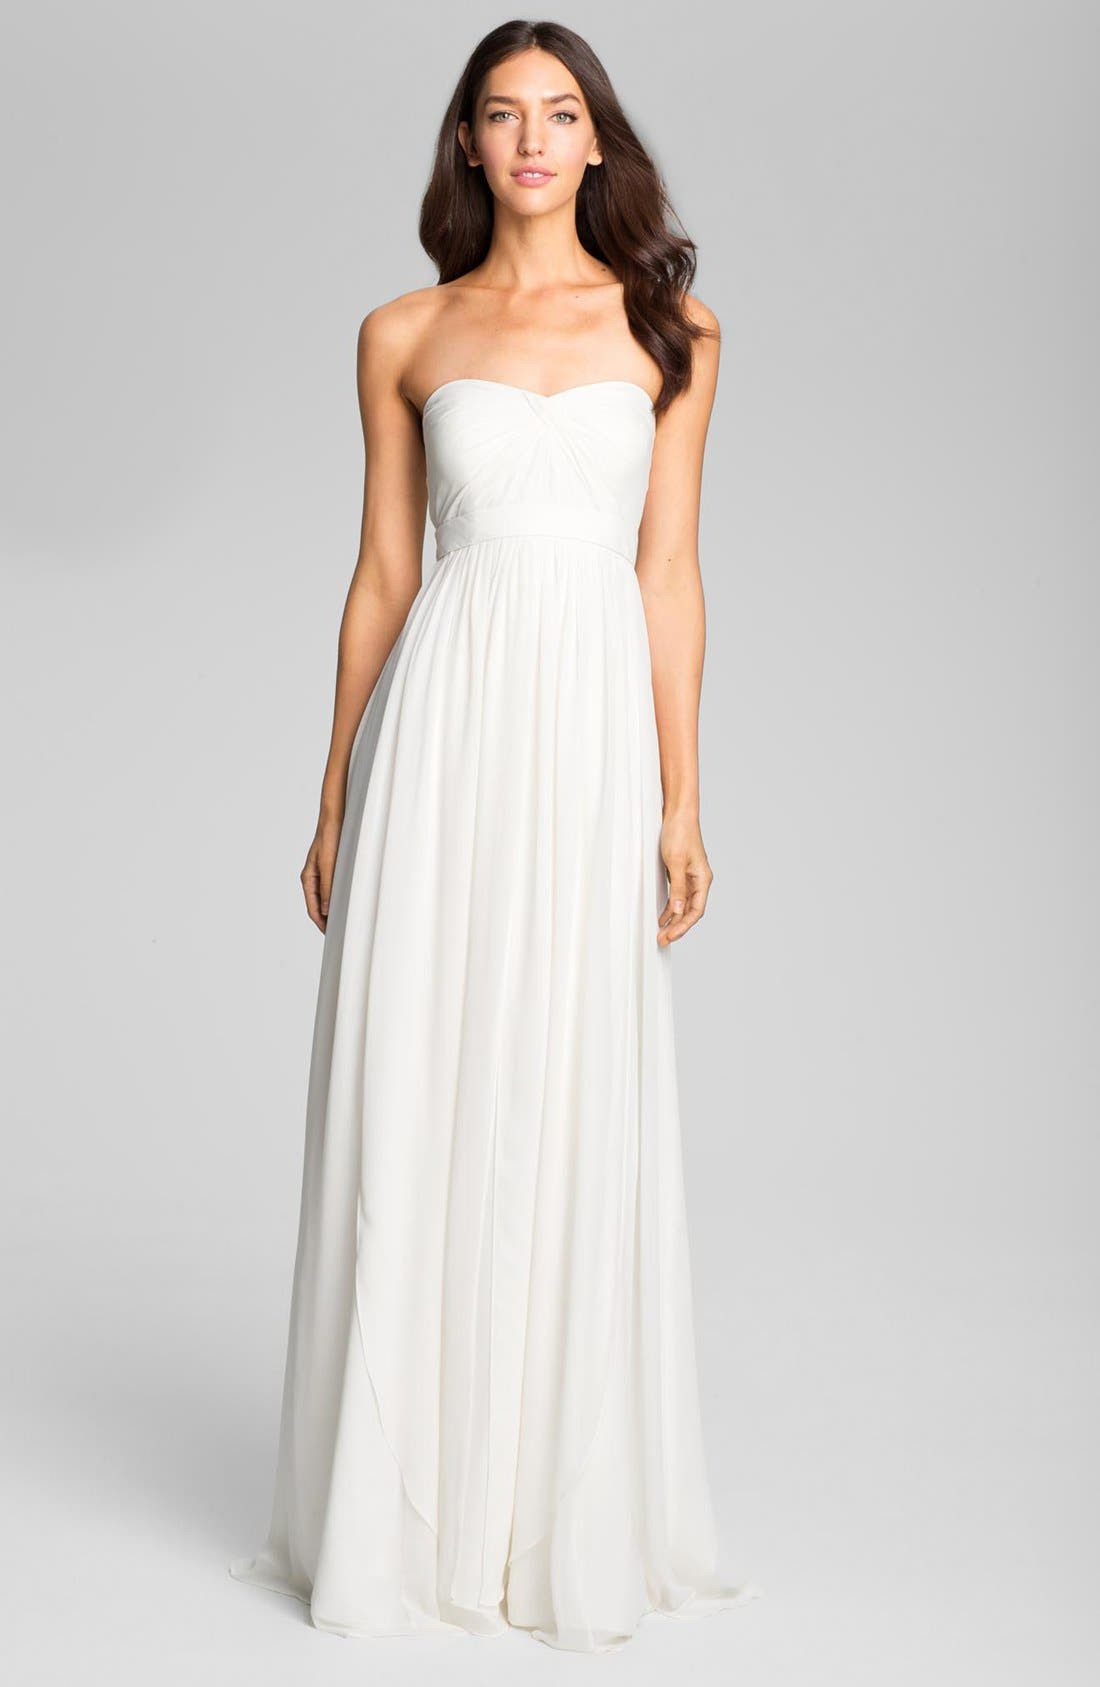 Alternate Image 1 Selected - Jenny Yoo 'Monarch' Sweetheart Neckline Layered Chiffon Gown